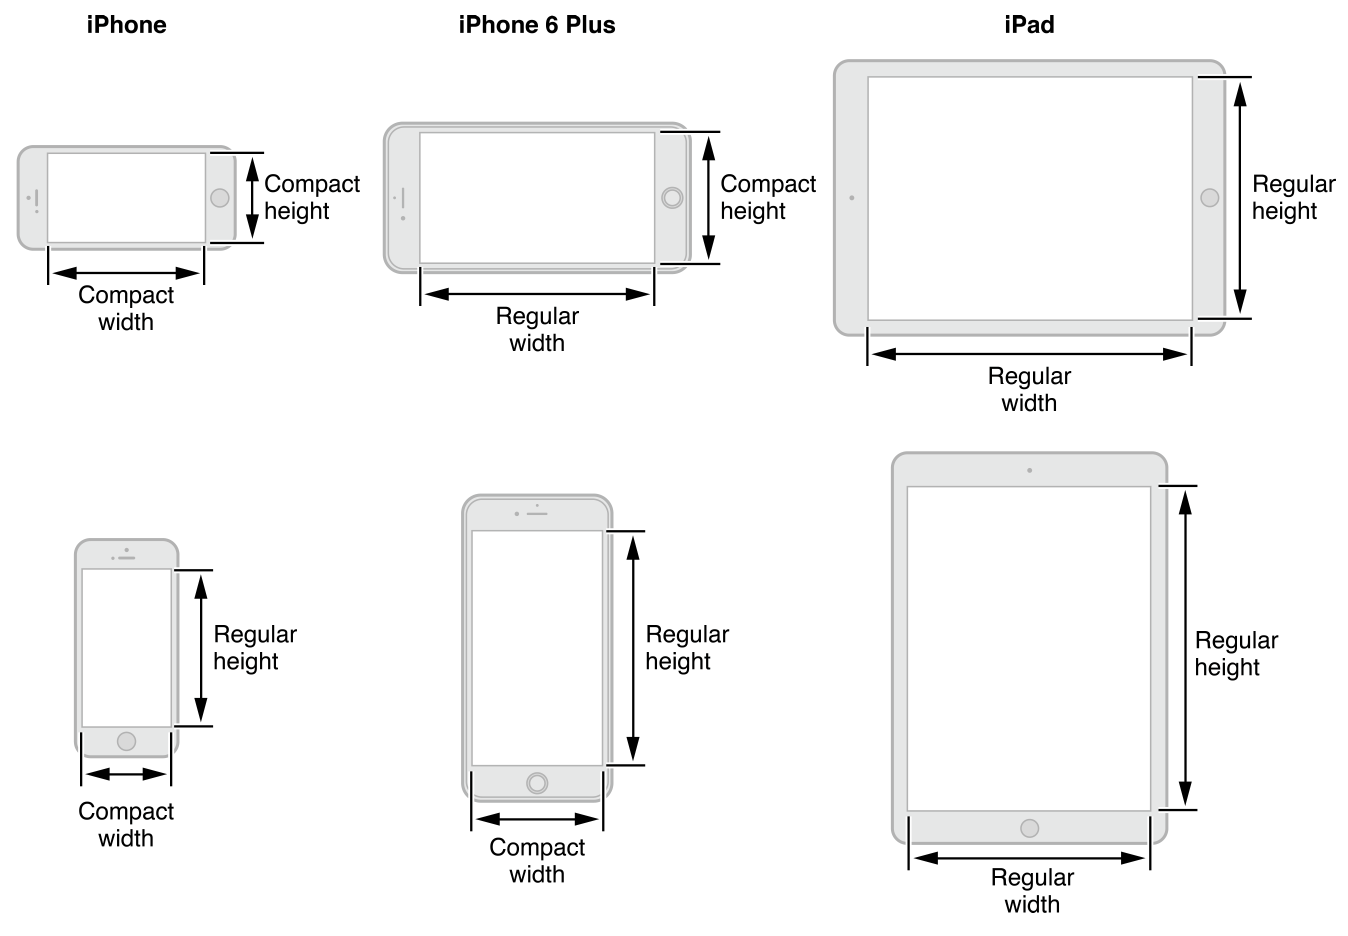 Size Classes Ipad Portrait Landscape If Let Swift Programming 2 Block Diagram Class Traits Make Possible To Support Multiple Devices And Orientations They Also Enable The Condensing Of Universal Apps Into One Storyboard File